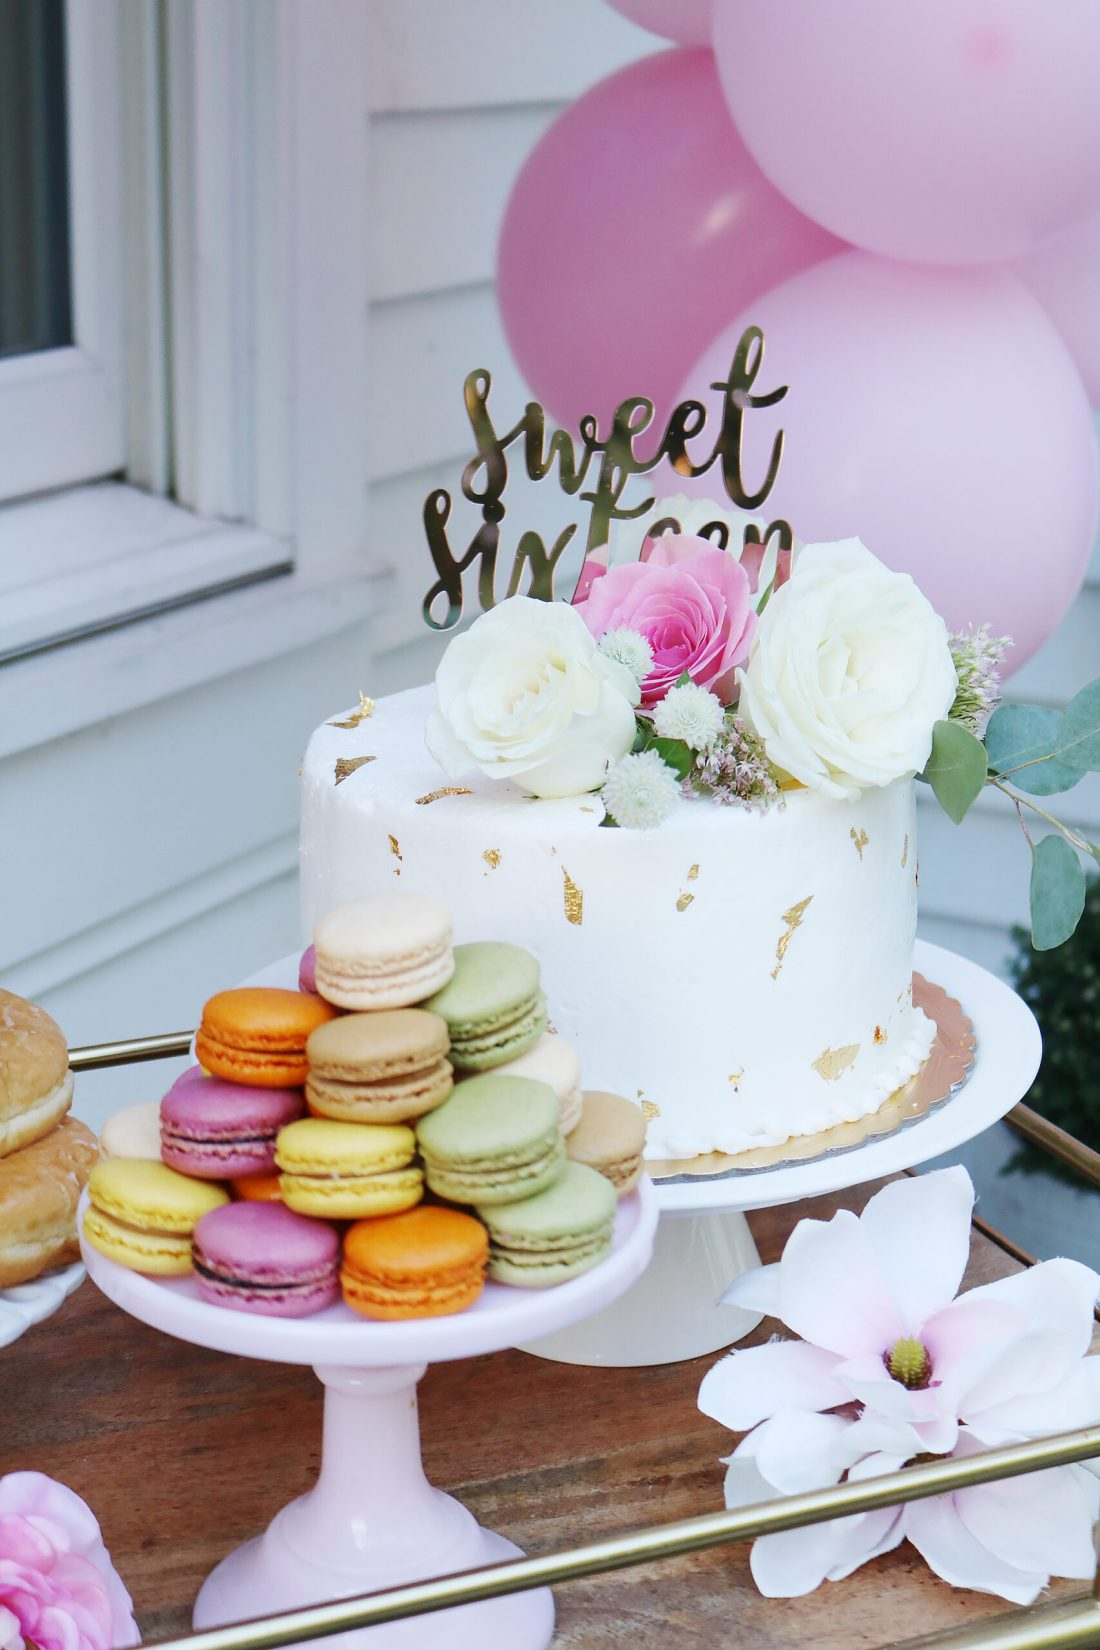 Boho Chic Sweet Sixteen Birthday Party Celebration with all the details and party plans.  Love the birthday cake. We did a sixteenth birthday photoshoot.  Perfect for any teenager turning 16! || Darling Darleen Top CT Lifestyle Blogger #sixteenthbirthday #sixteenthbirthdayparty